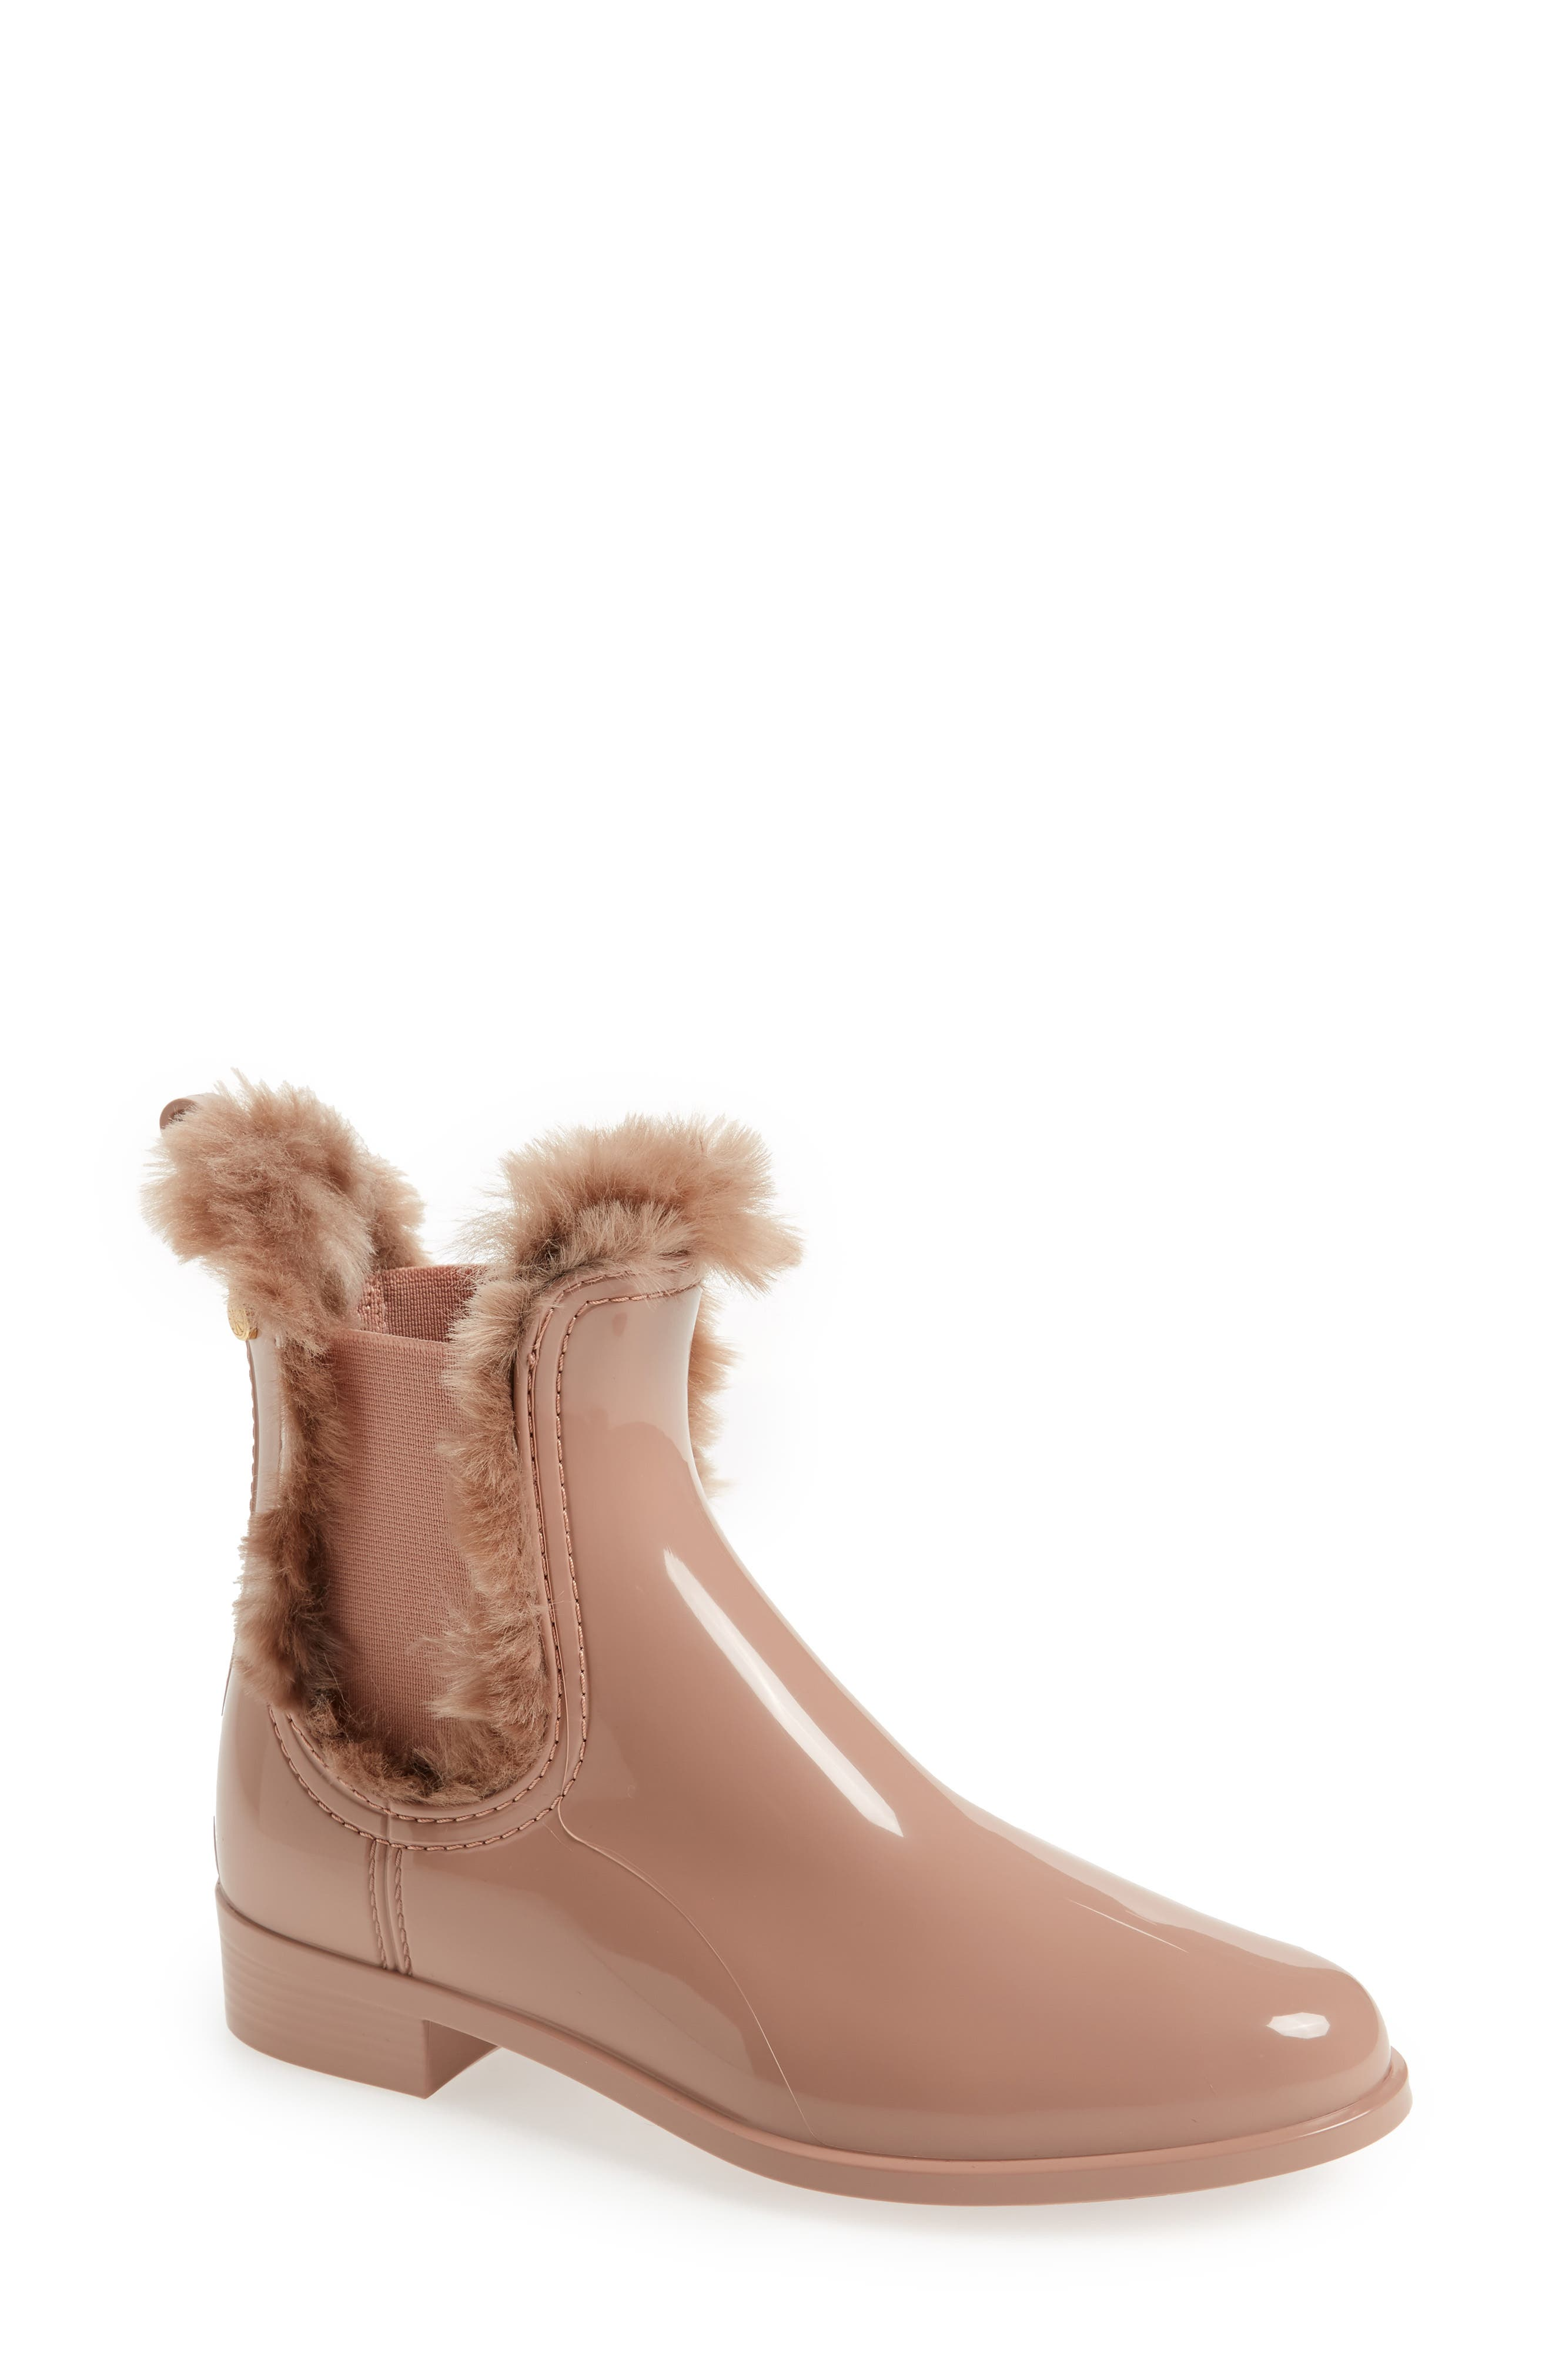 Aisha Waterproof Chelsea Boot with Faux Fur Lining,                             Main thumbnail 1, color,                             ROSE MATTE